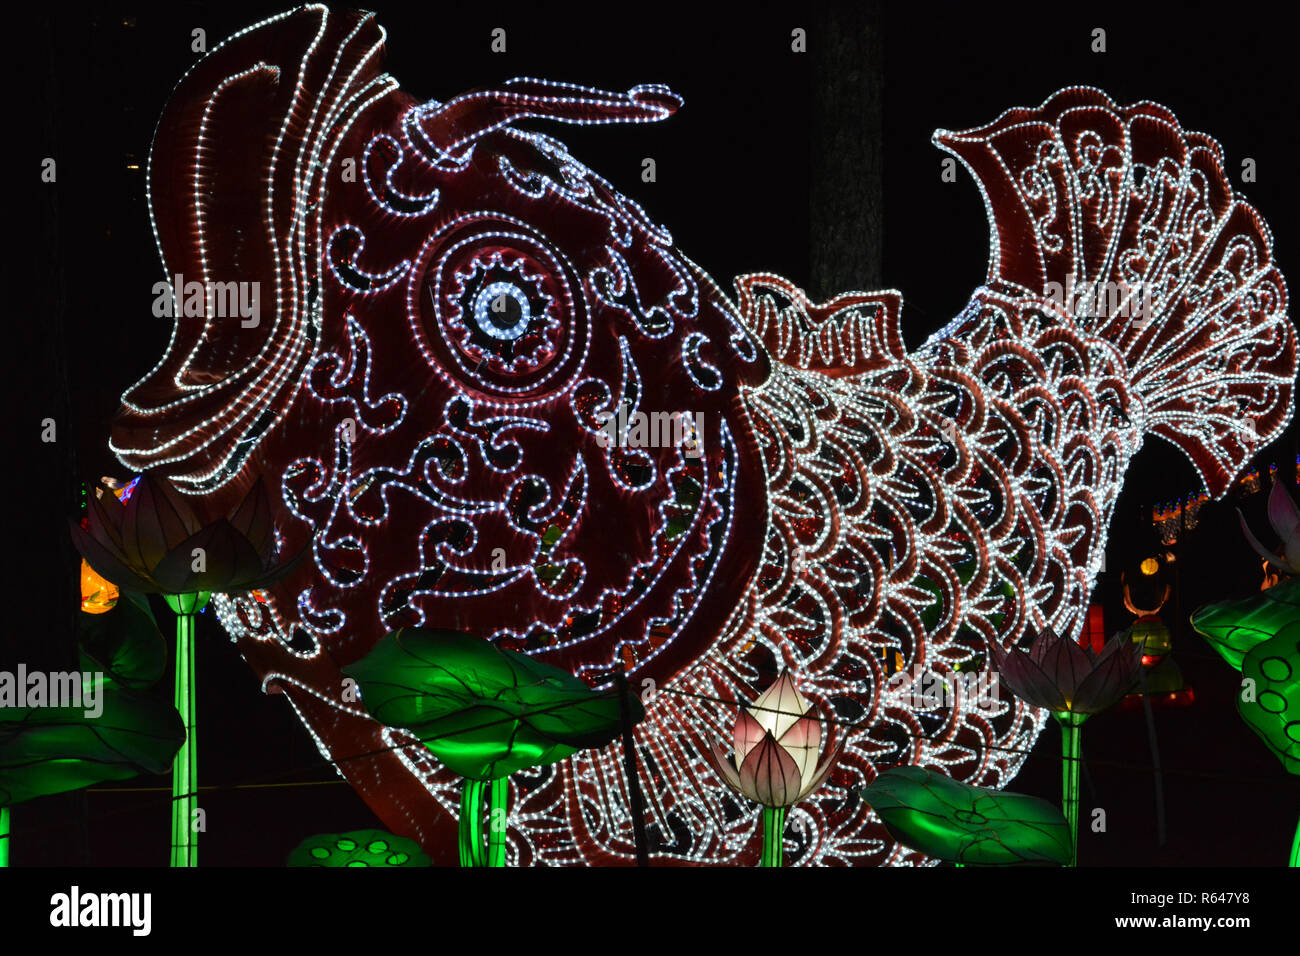 The annual North Carolina Chinese Lantern Festival held in the town of Cary, a suburb of Raleigh. - Stock Image